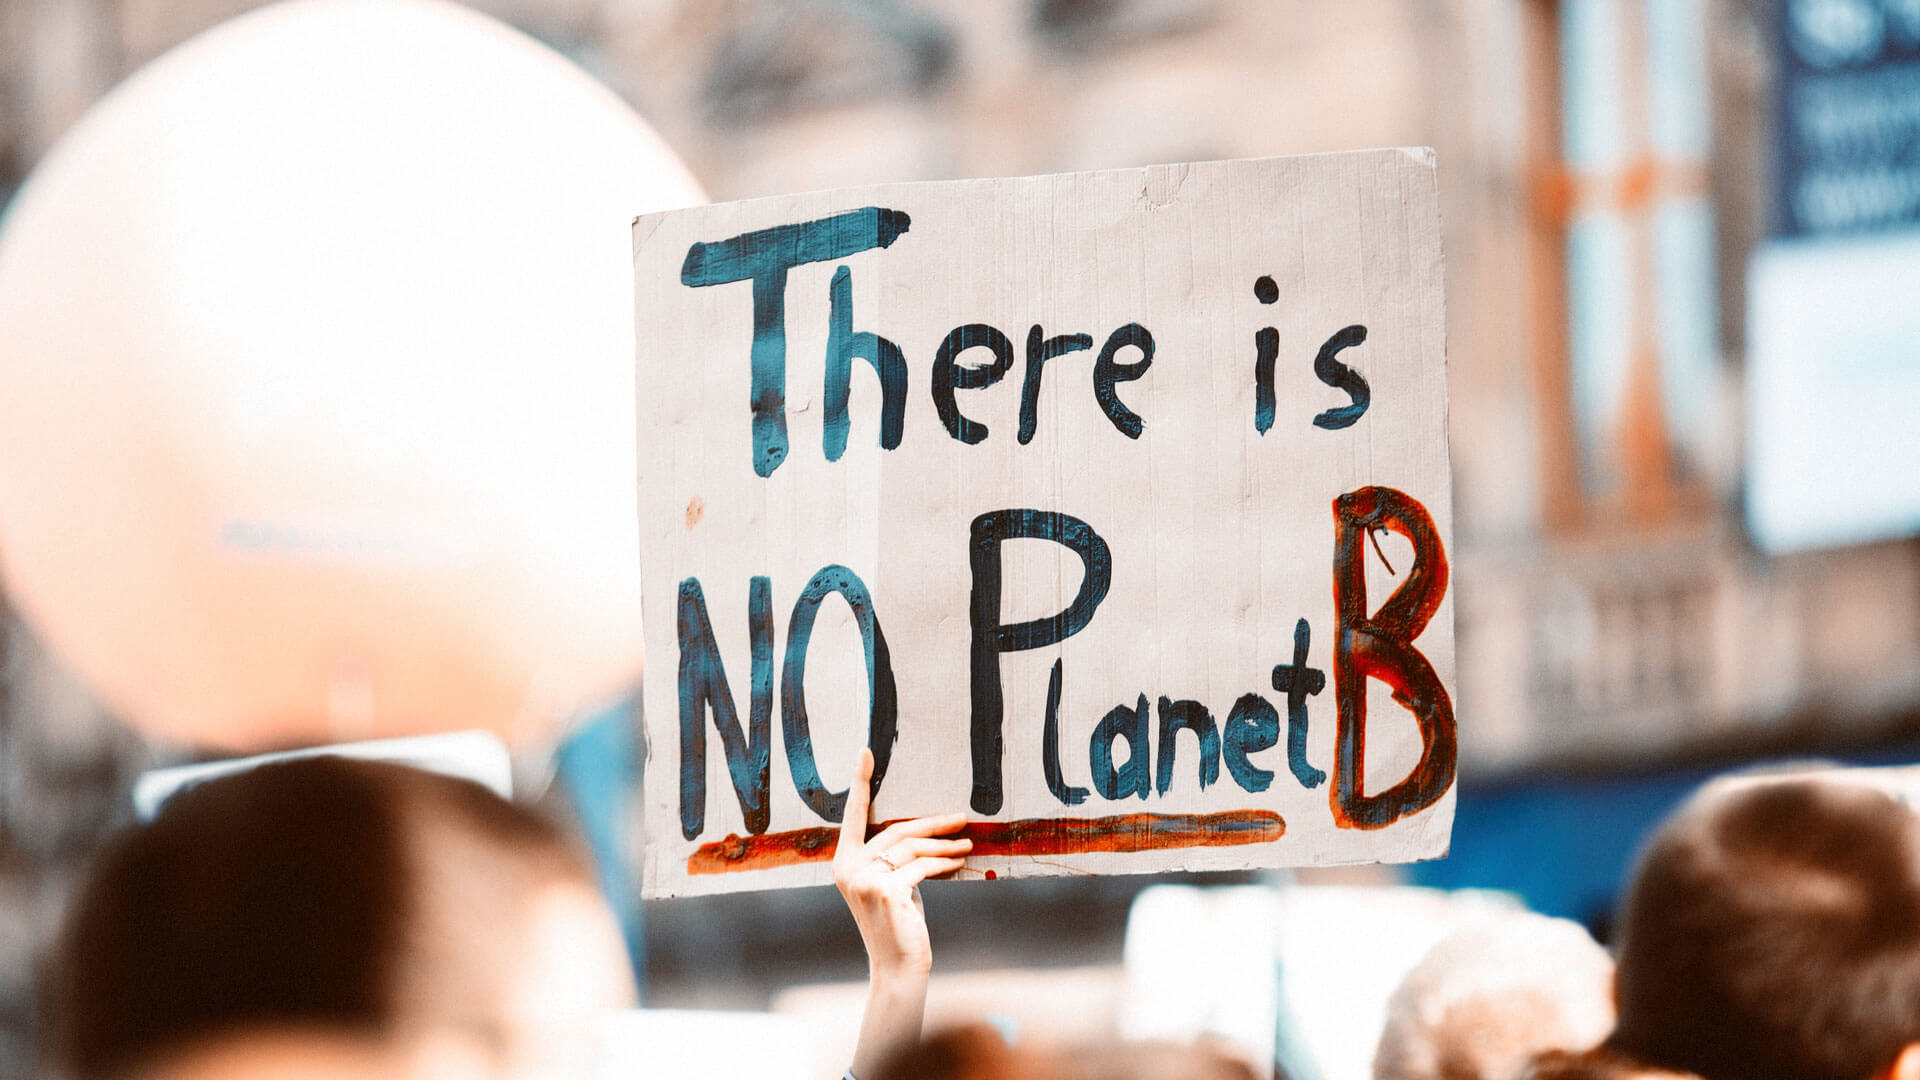 cartaz there is no planet b